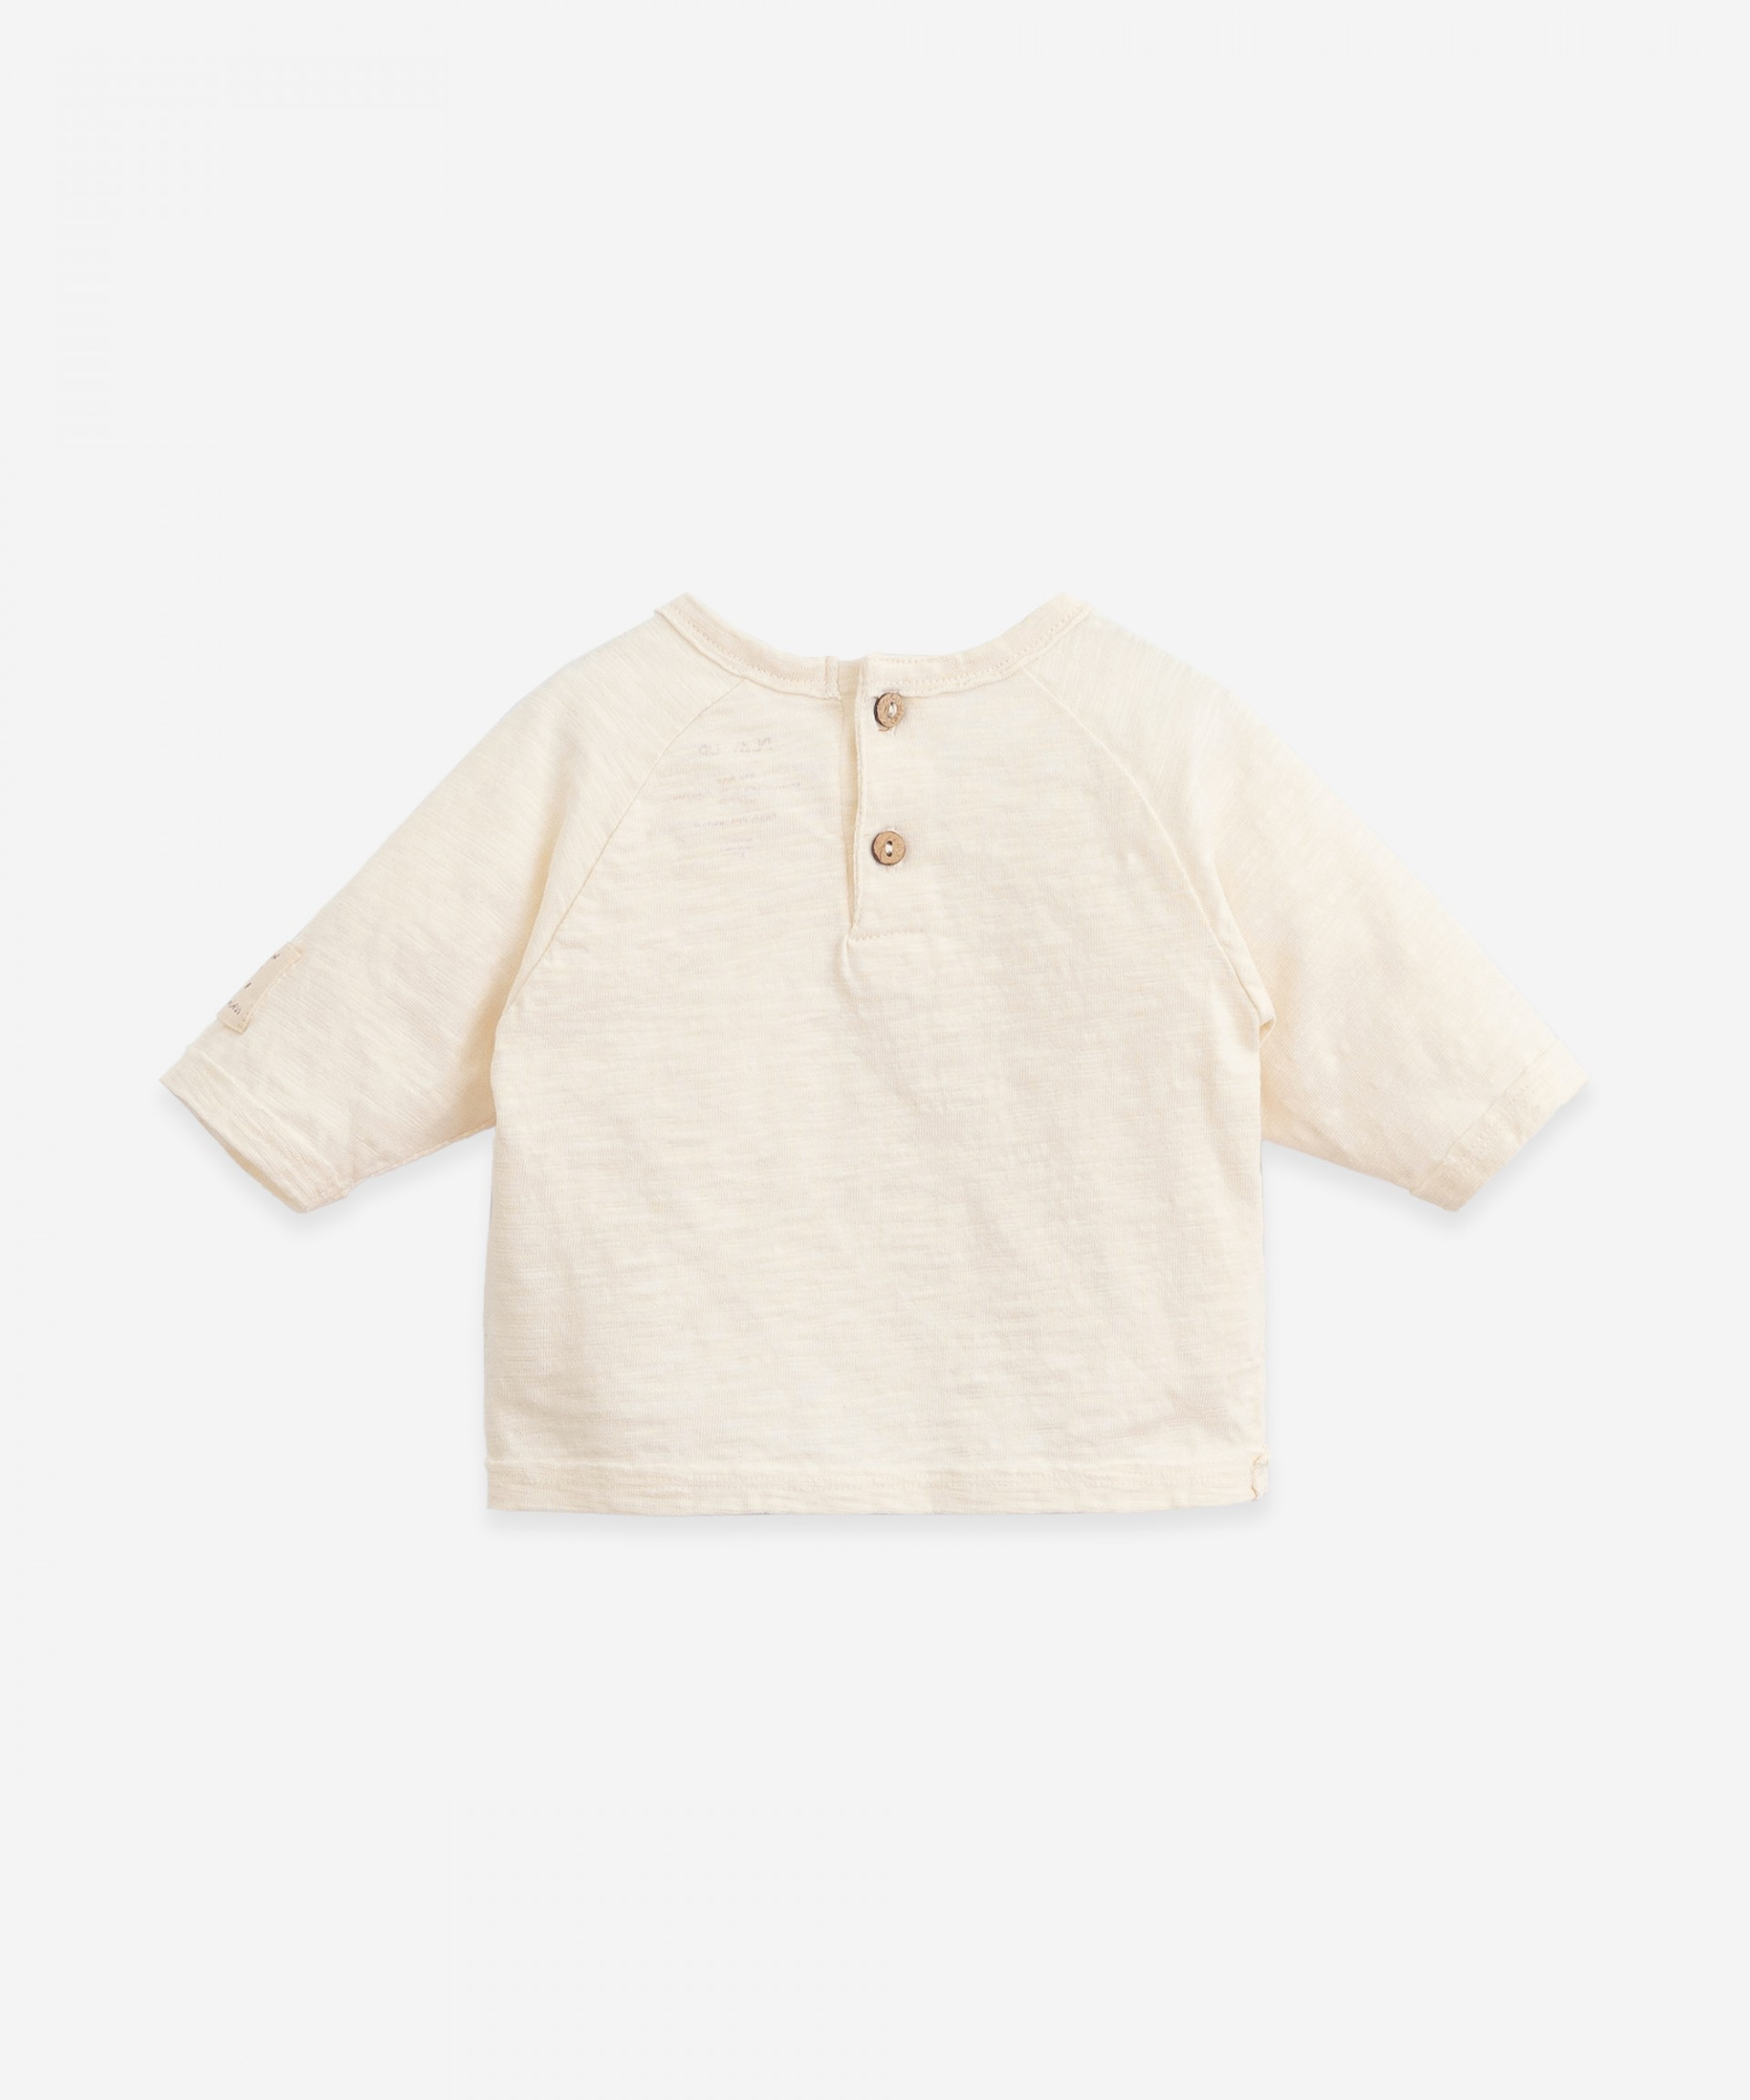 T-shirt with label on the sleeve | Botany